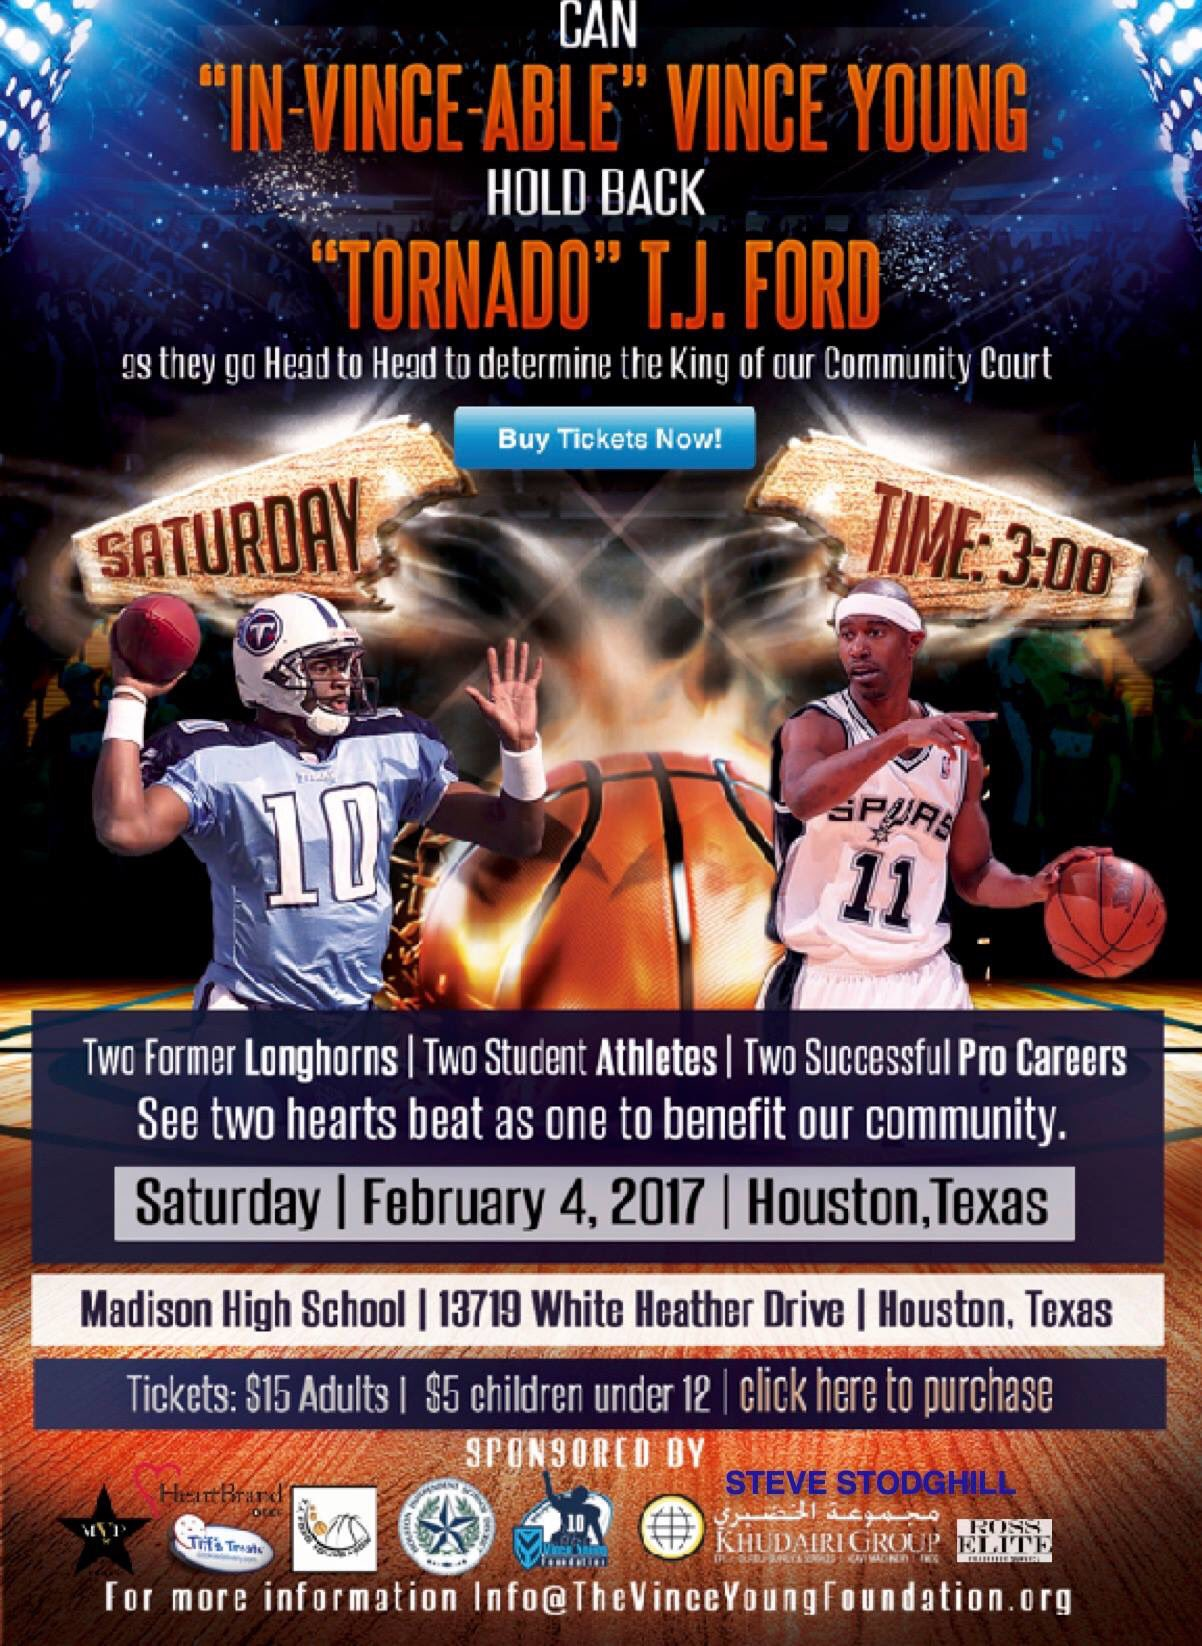 TJ Ford vs Vince Young Celebrity Basketball Game